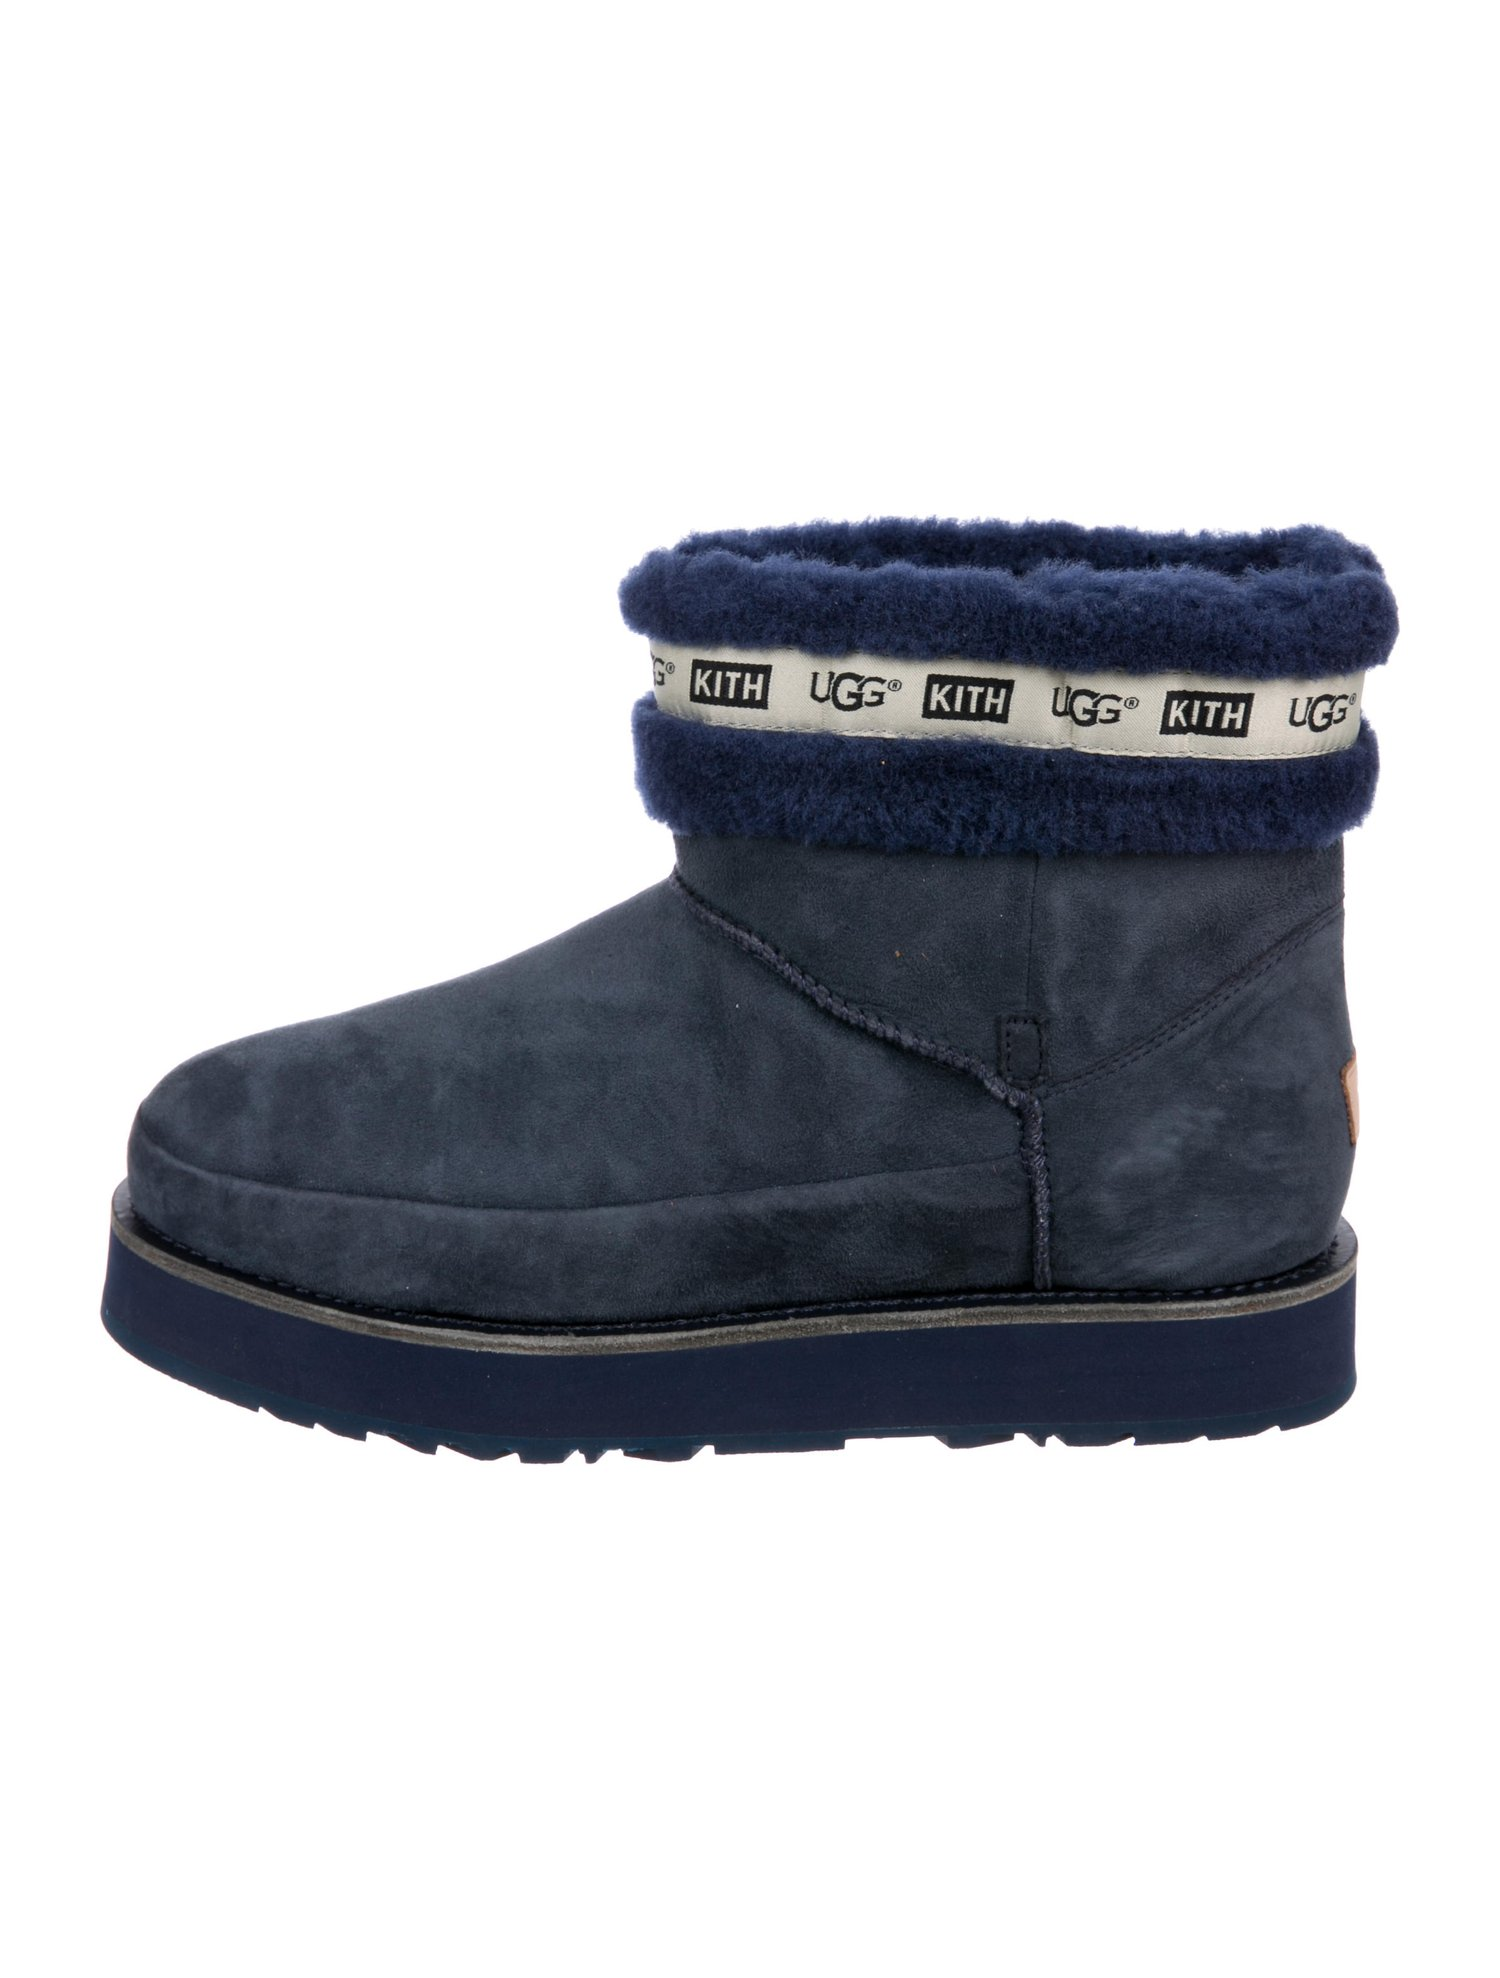 UGG AUSTRALIA Kith Suede Boots $195,  The Real Real